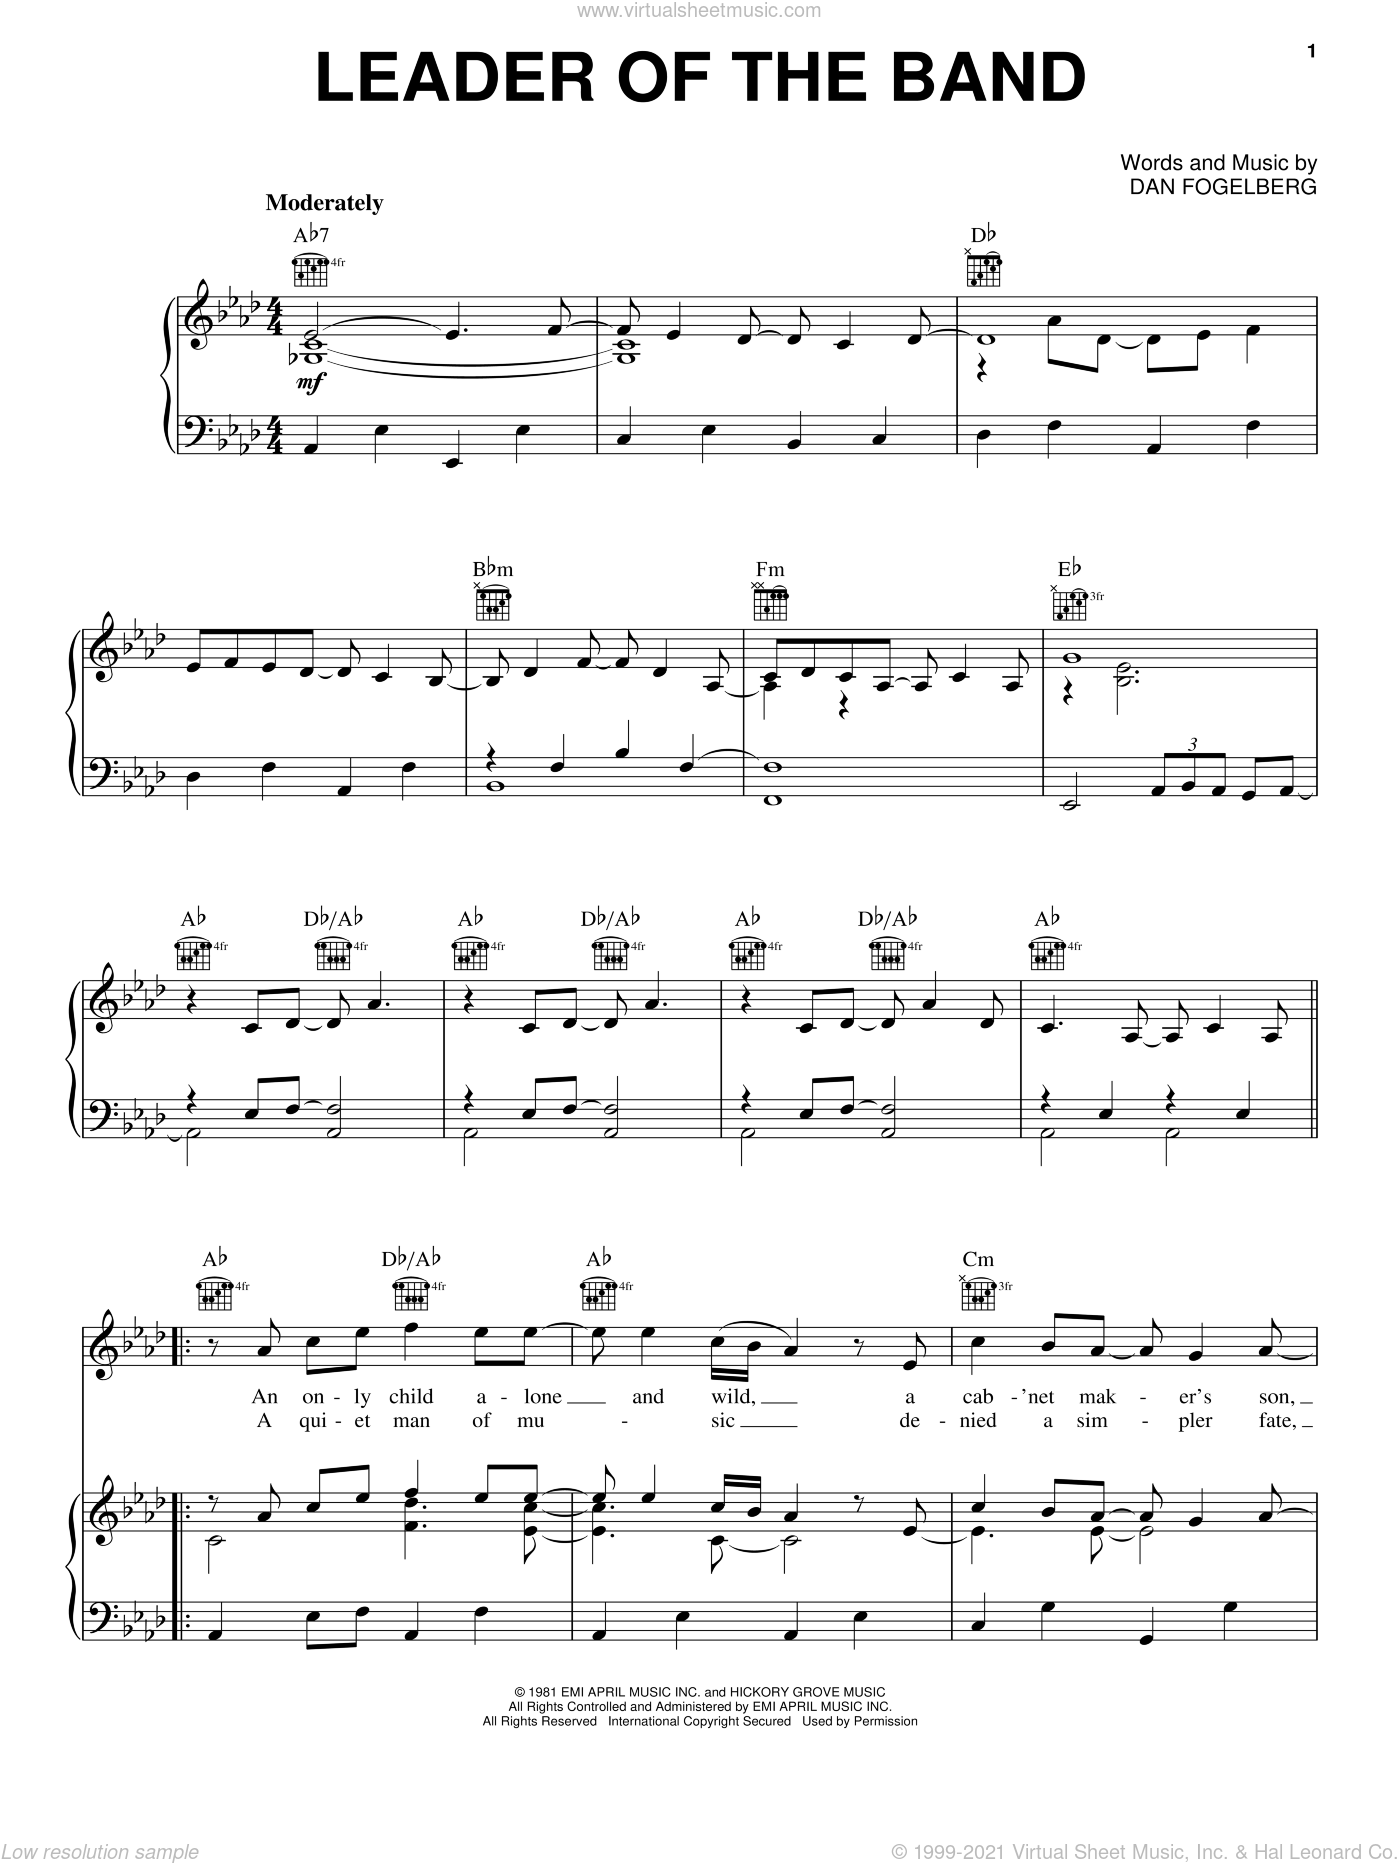 Leader Of The Band sheet music for voice, piano or guitar by Dan Fogelberg